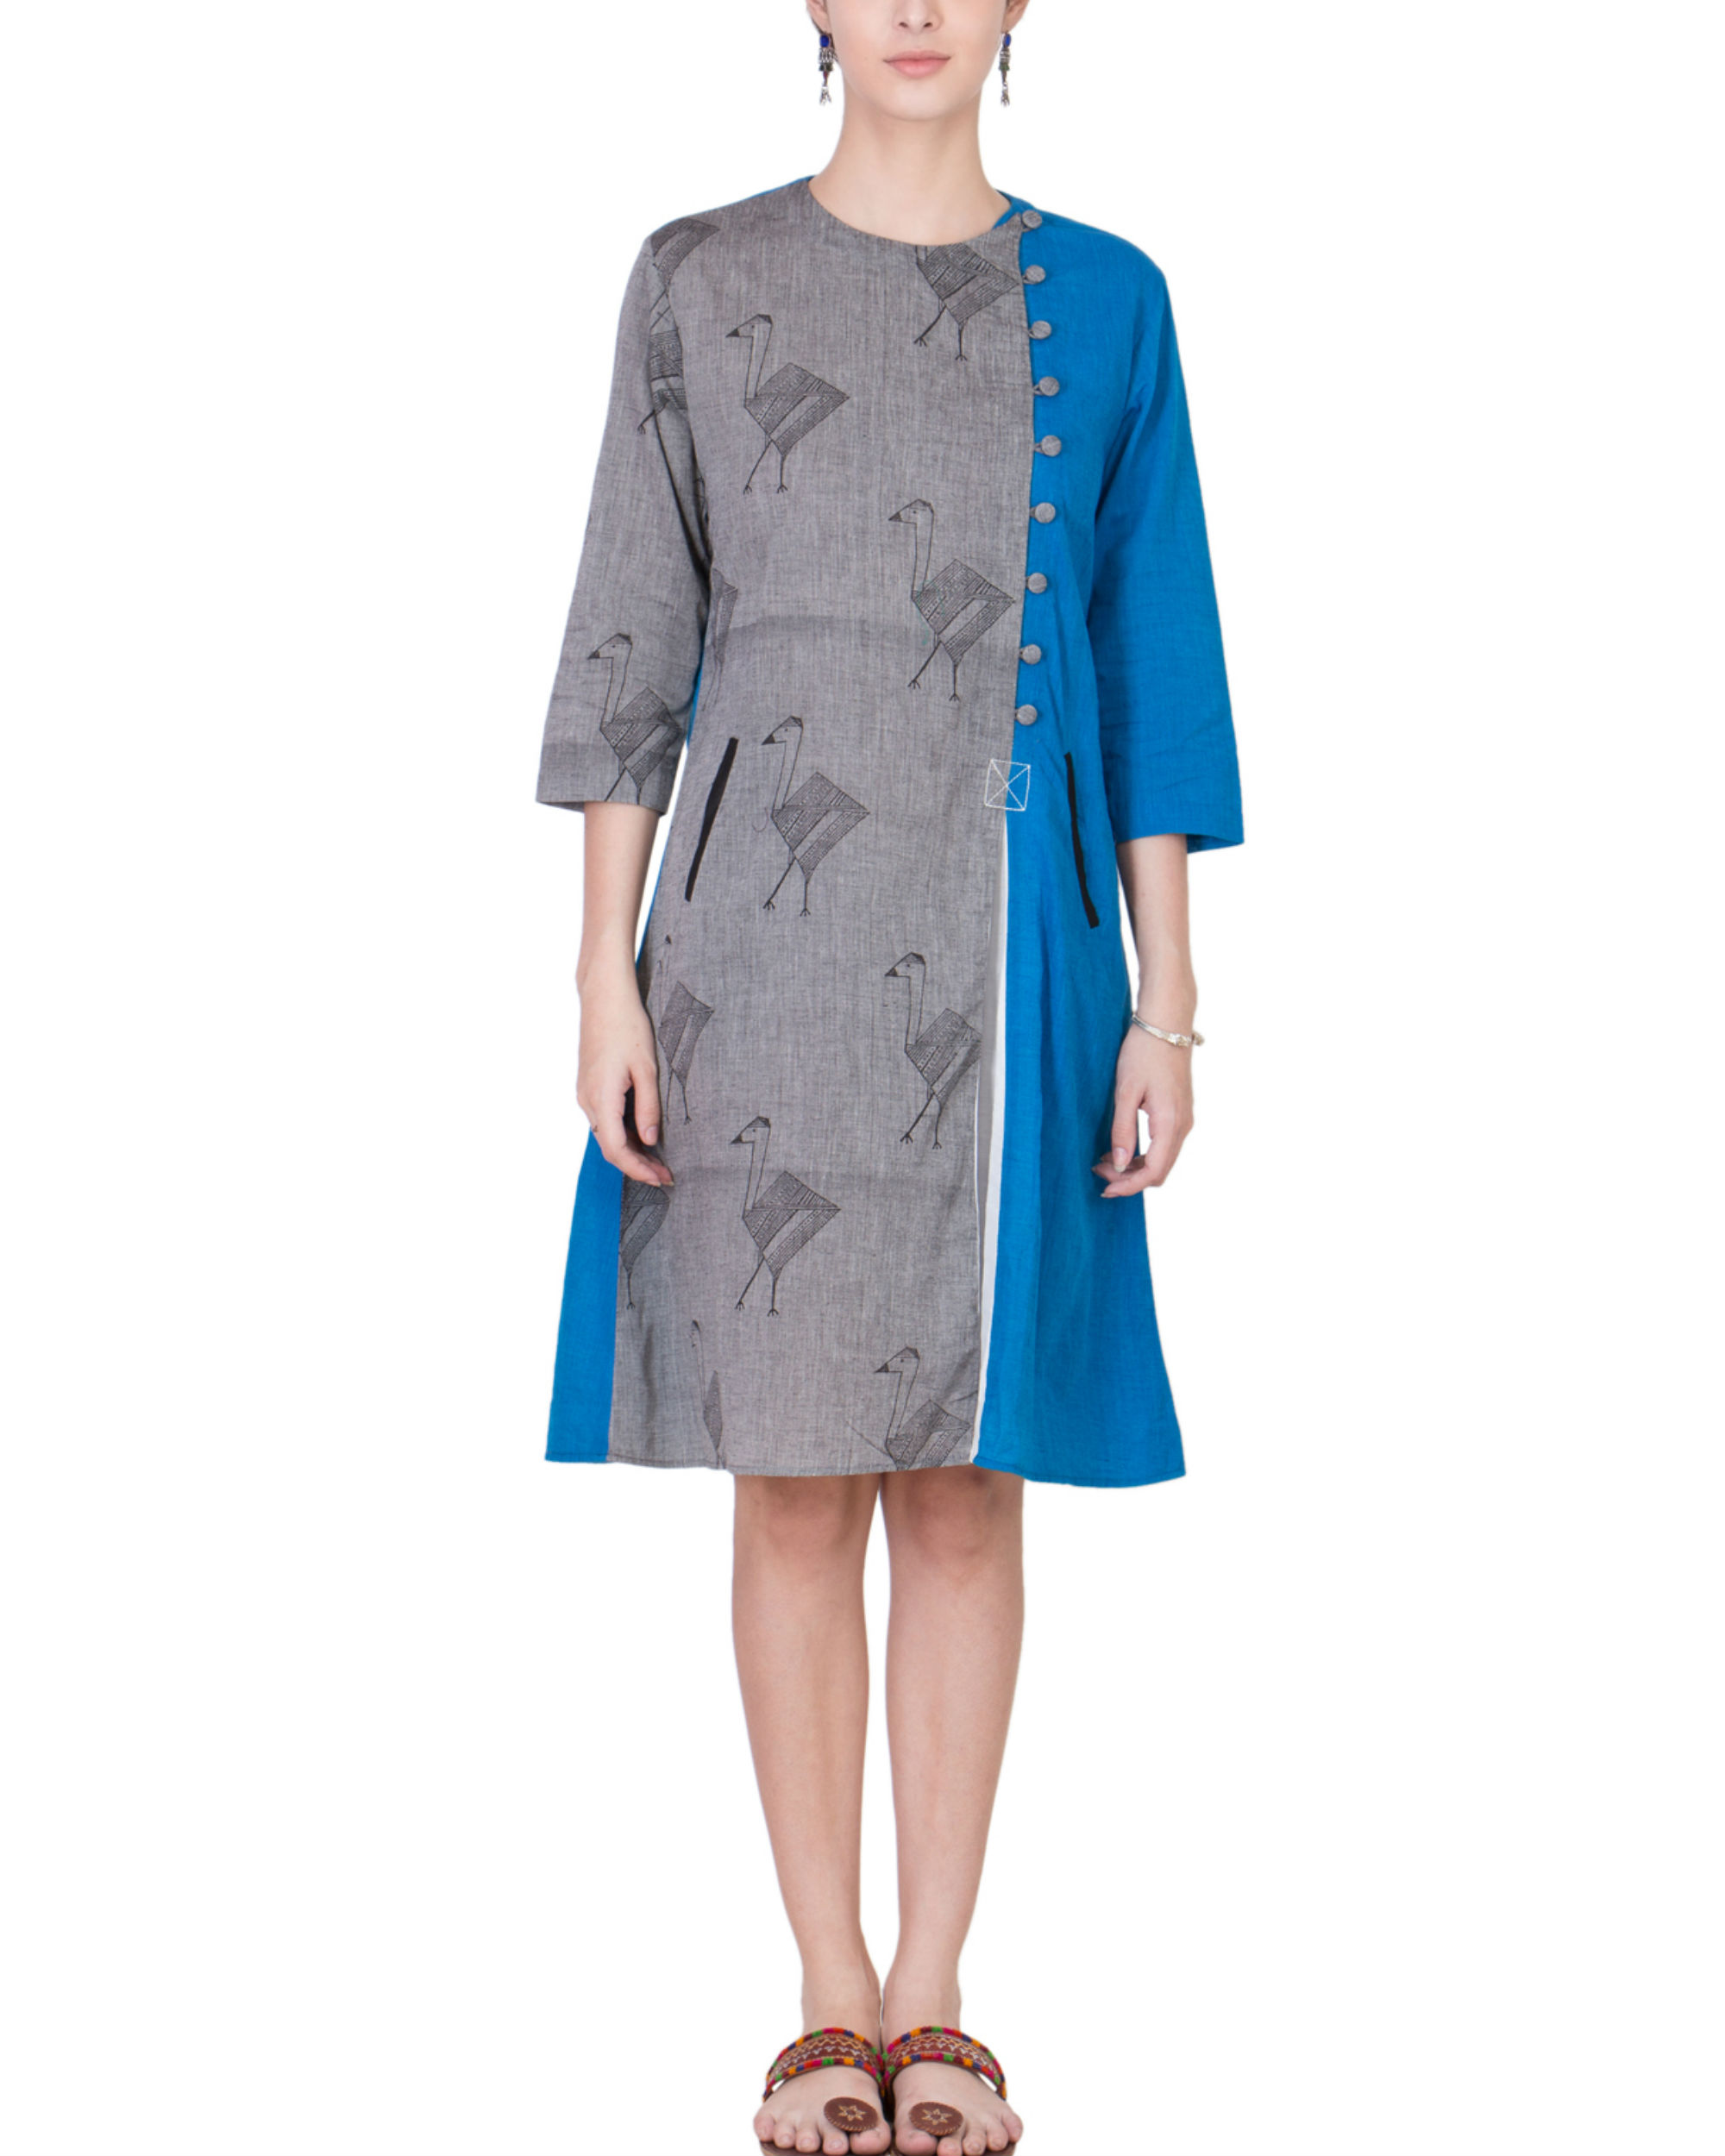 Grey and blue assymetrical tunic